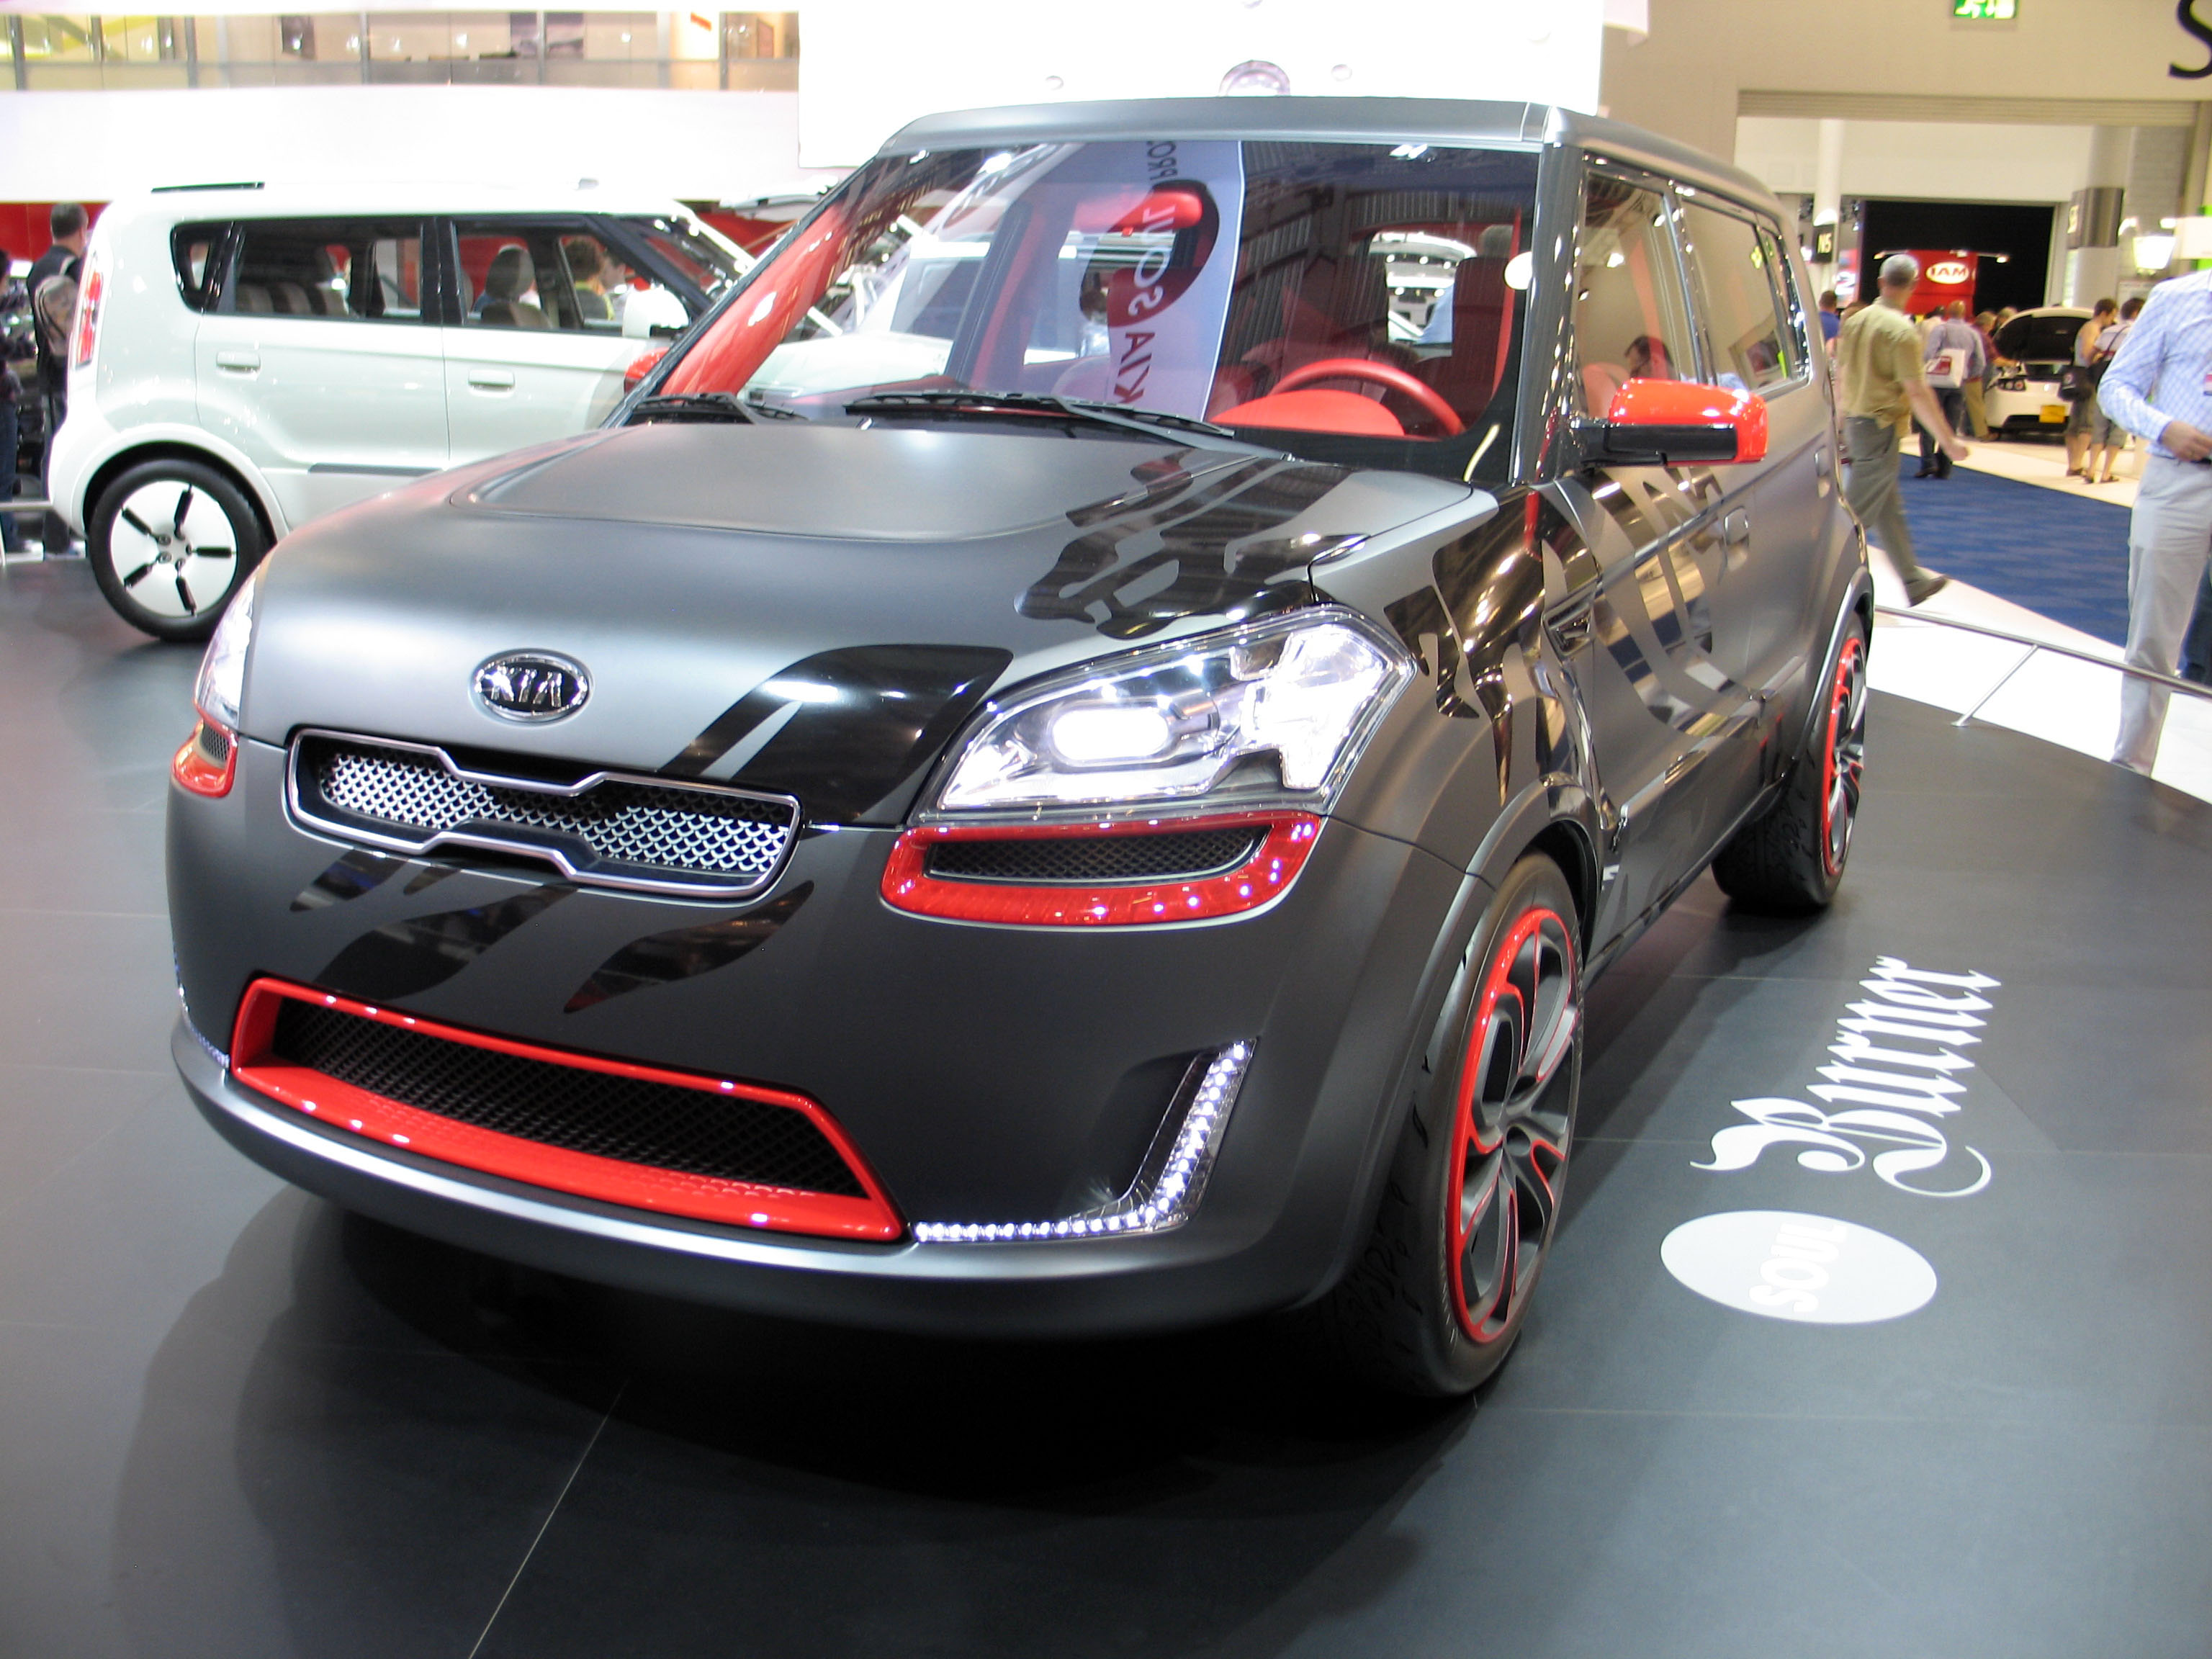 Exotic Kia Soul Concept Car